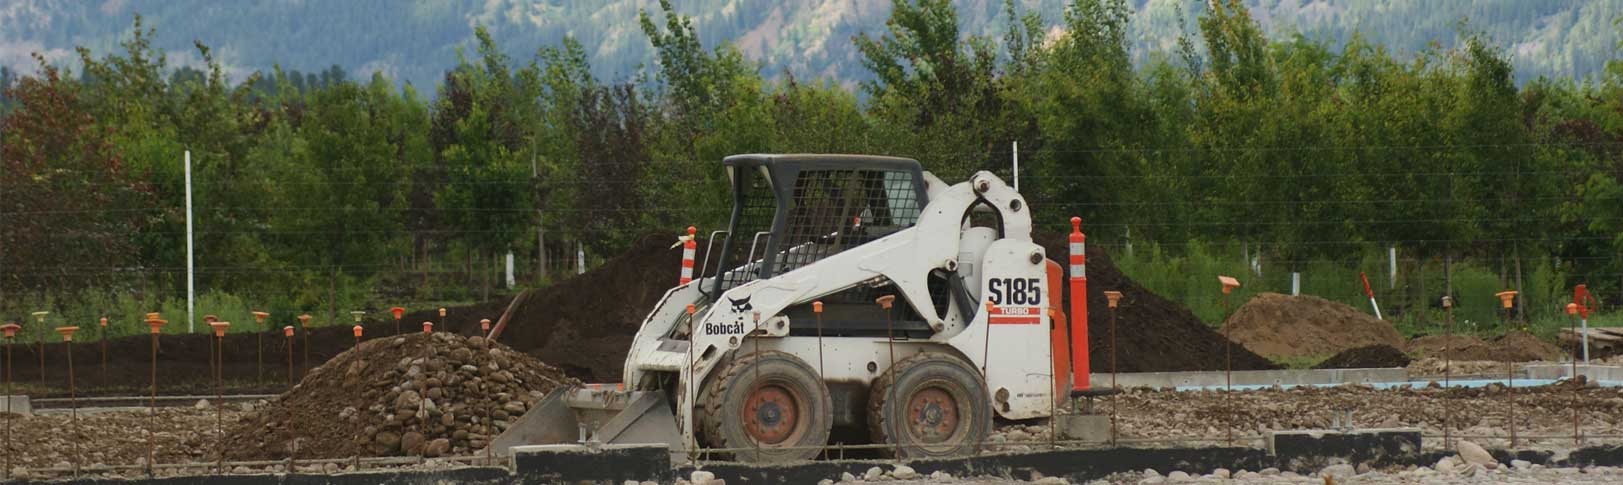 Homeowner Equipment Rentals in the Quesnel BC area